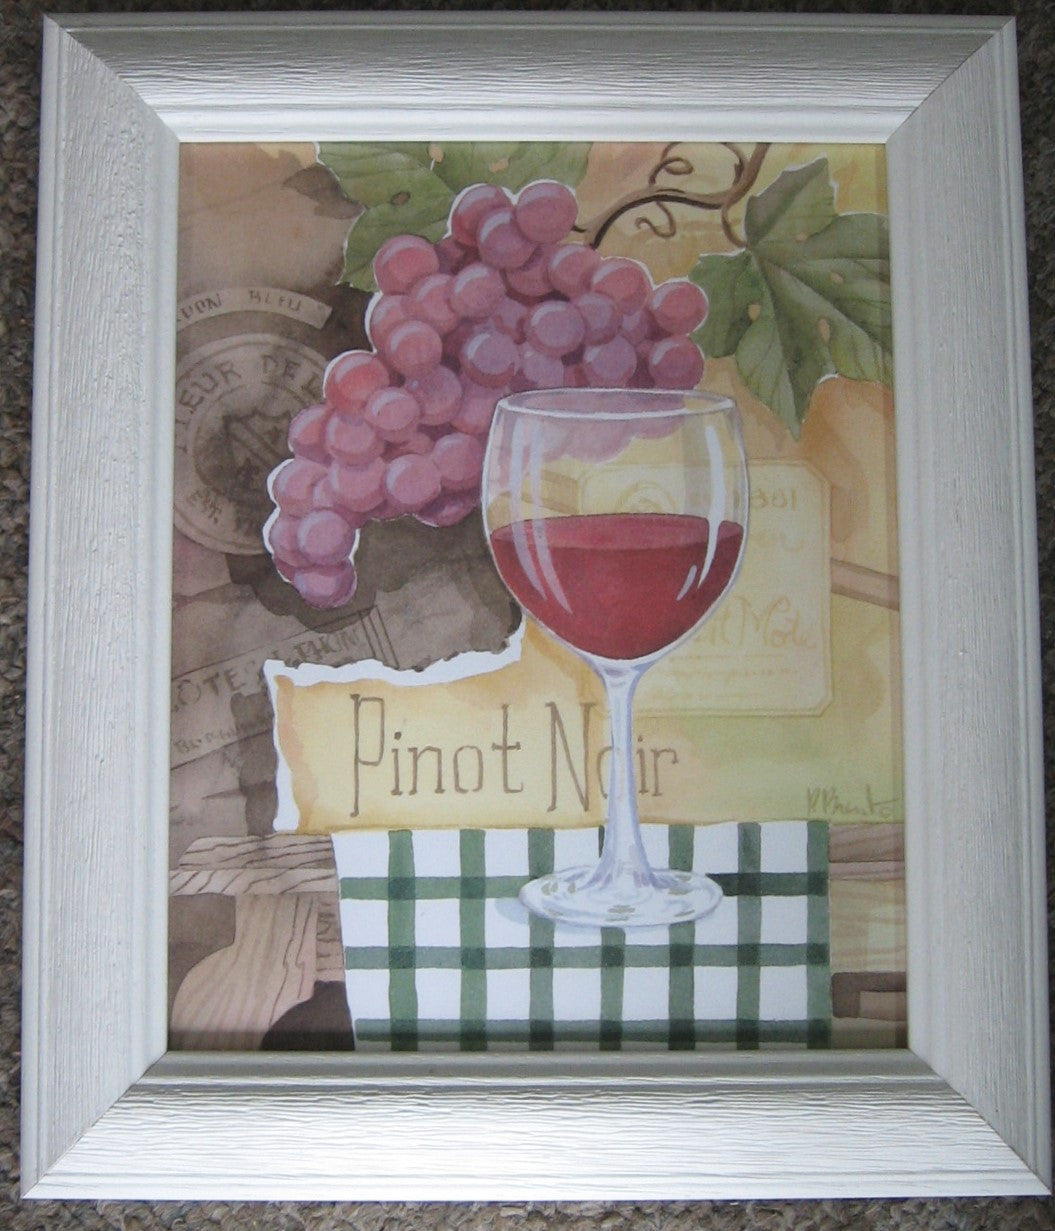 CUSTOM FRAMED WINE ART PRINT BY PAUL BRENT,PINOT NOIR,  WHITE DRIFTWOOD FRAME